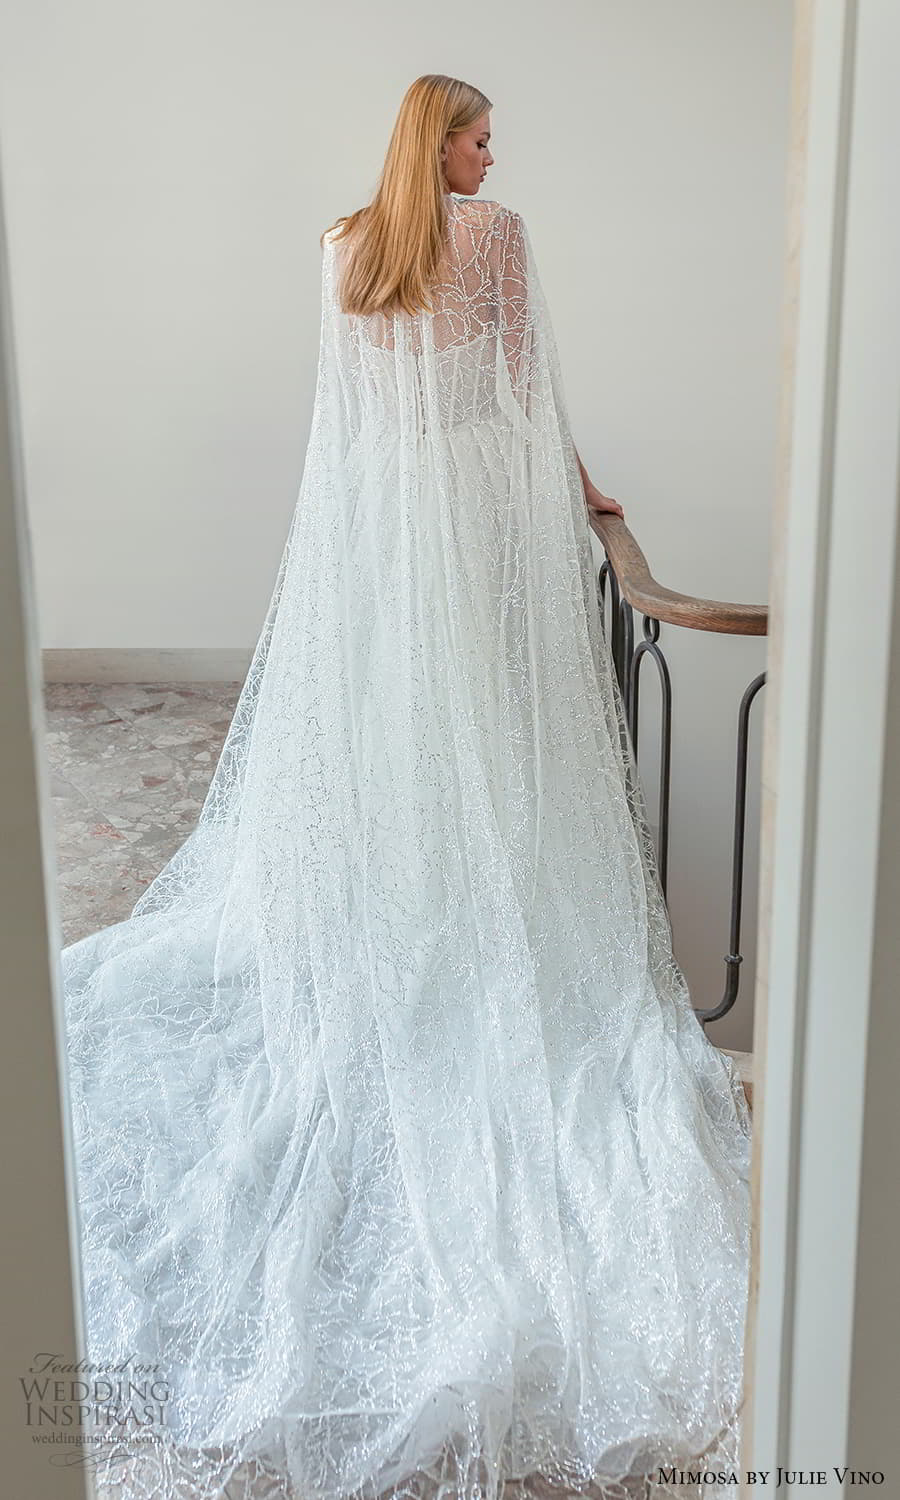 mimosa julie vino 2021 bridal strapless semi sweetheart neckline fully embellished a line ball gown wedding dress chapel train cape (5) bv